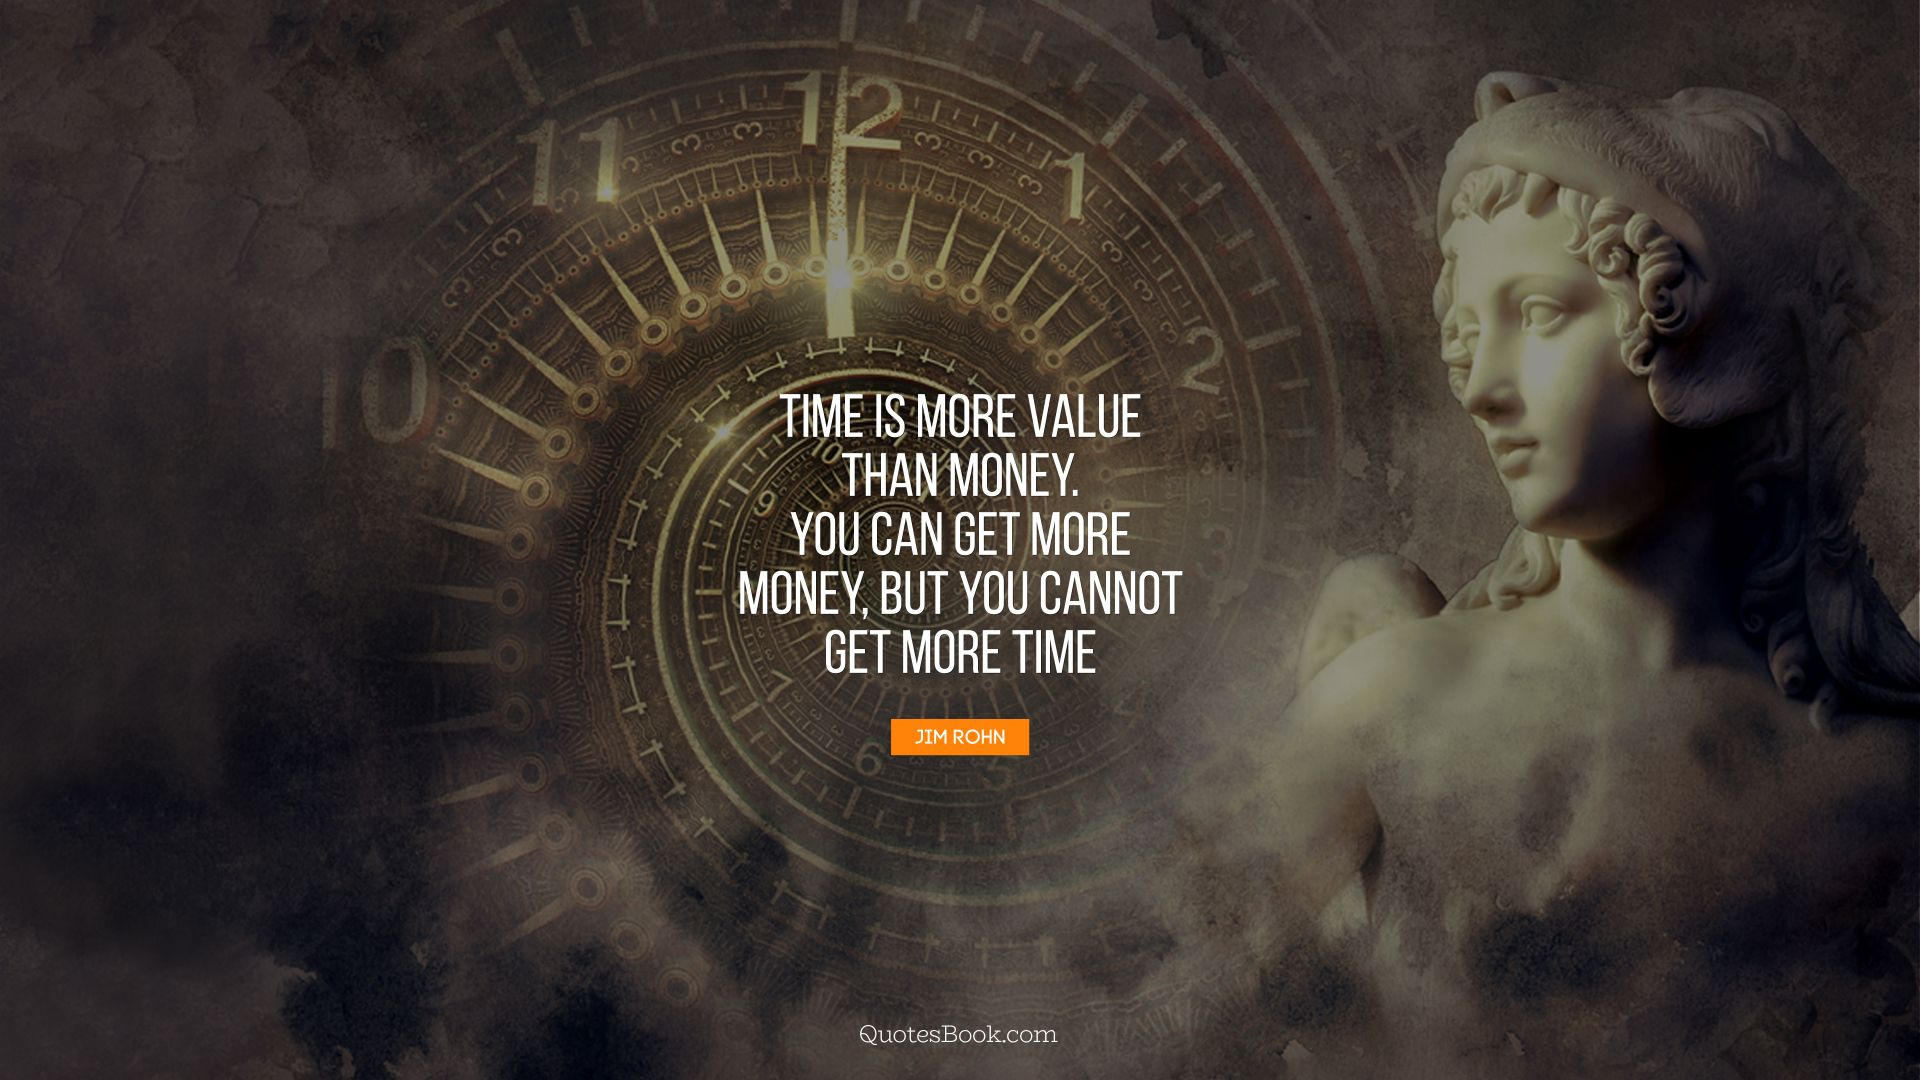 Time is more value than money. You can get more money, but you cannot get more time. - Quote by Jim Rohn